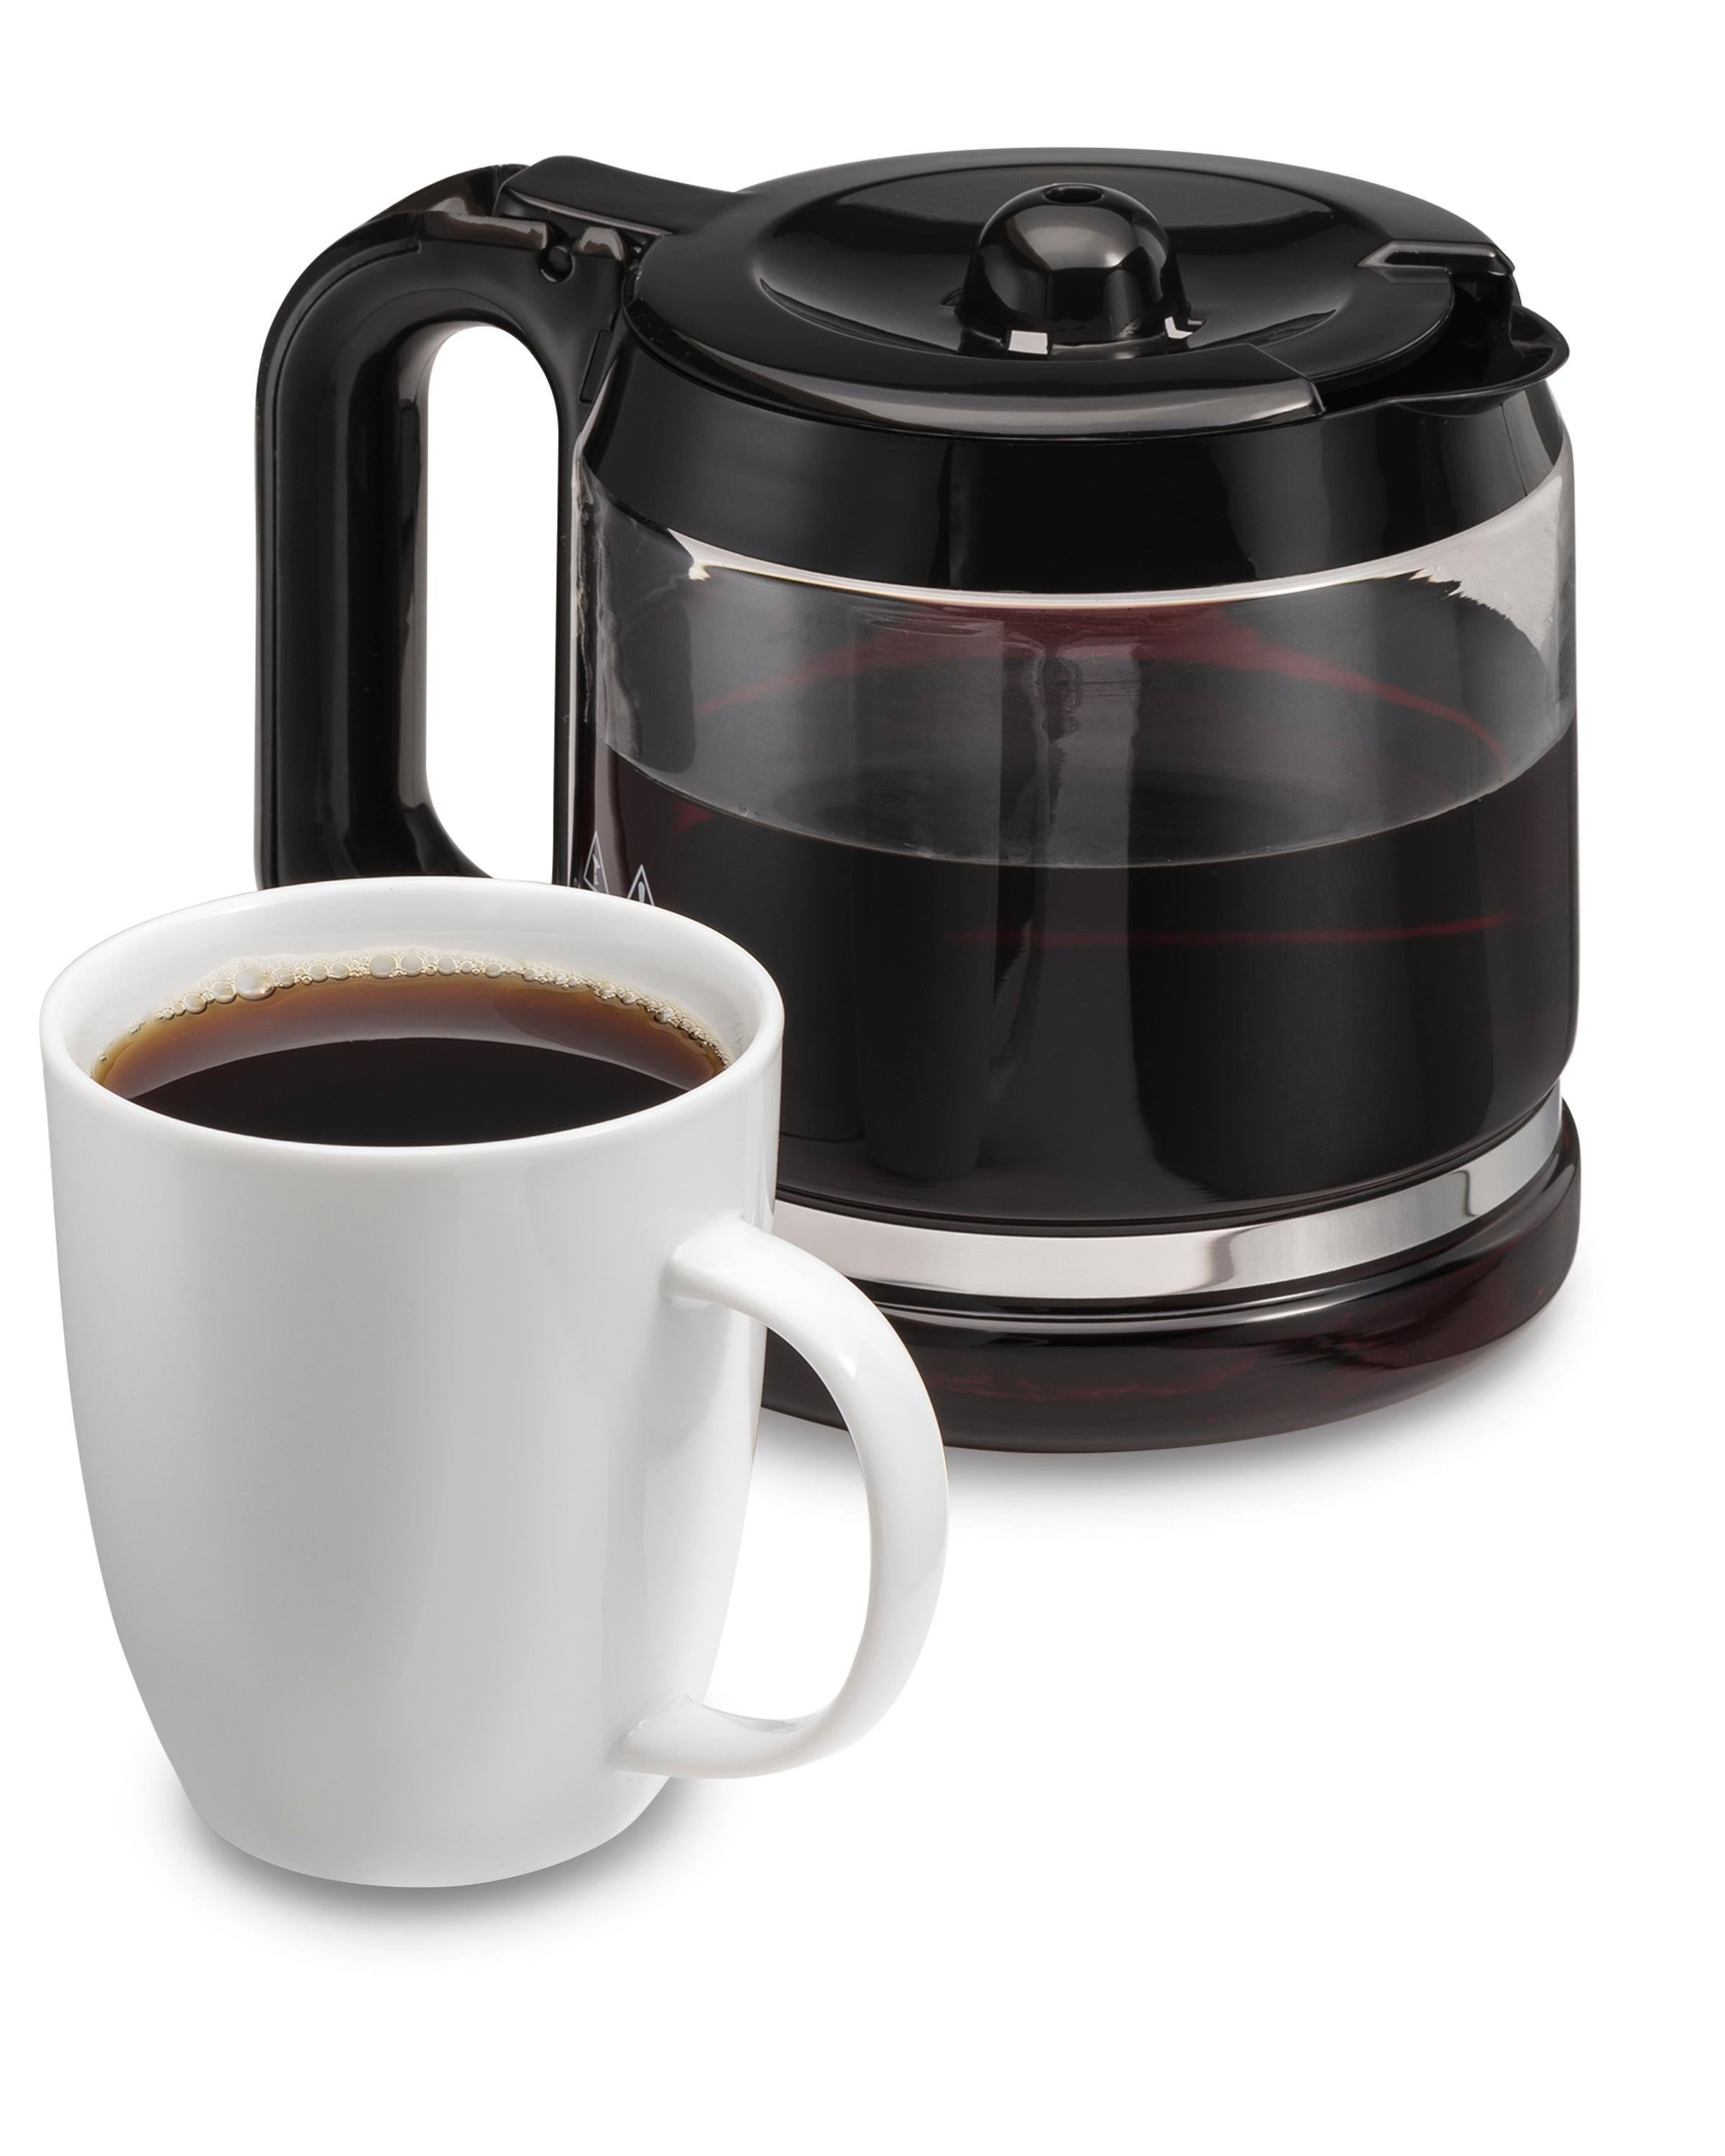 Coffee Maker For Large Groups : Amazon.com: Hamilton Beach 49982 Coffee Maker & Hot Water Dispenser, Black: Kitchen & Dining